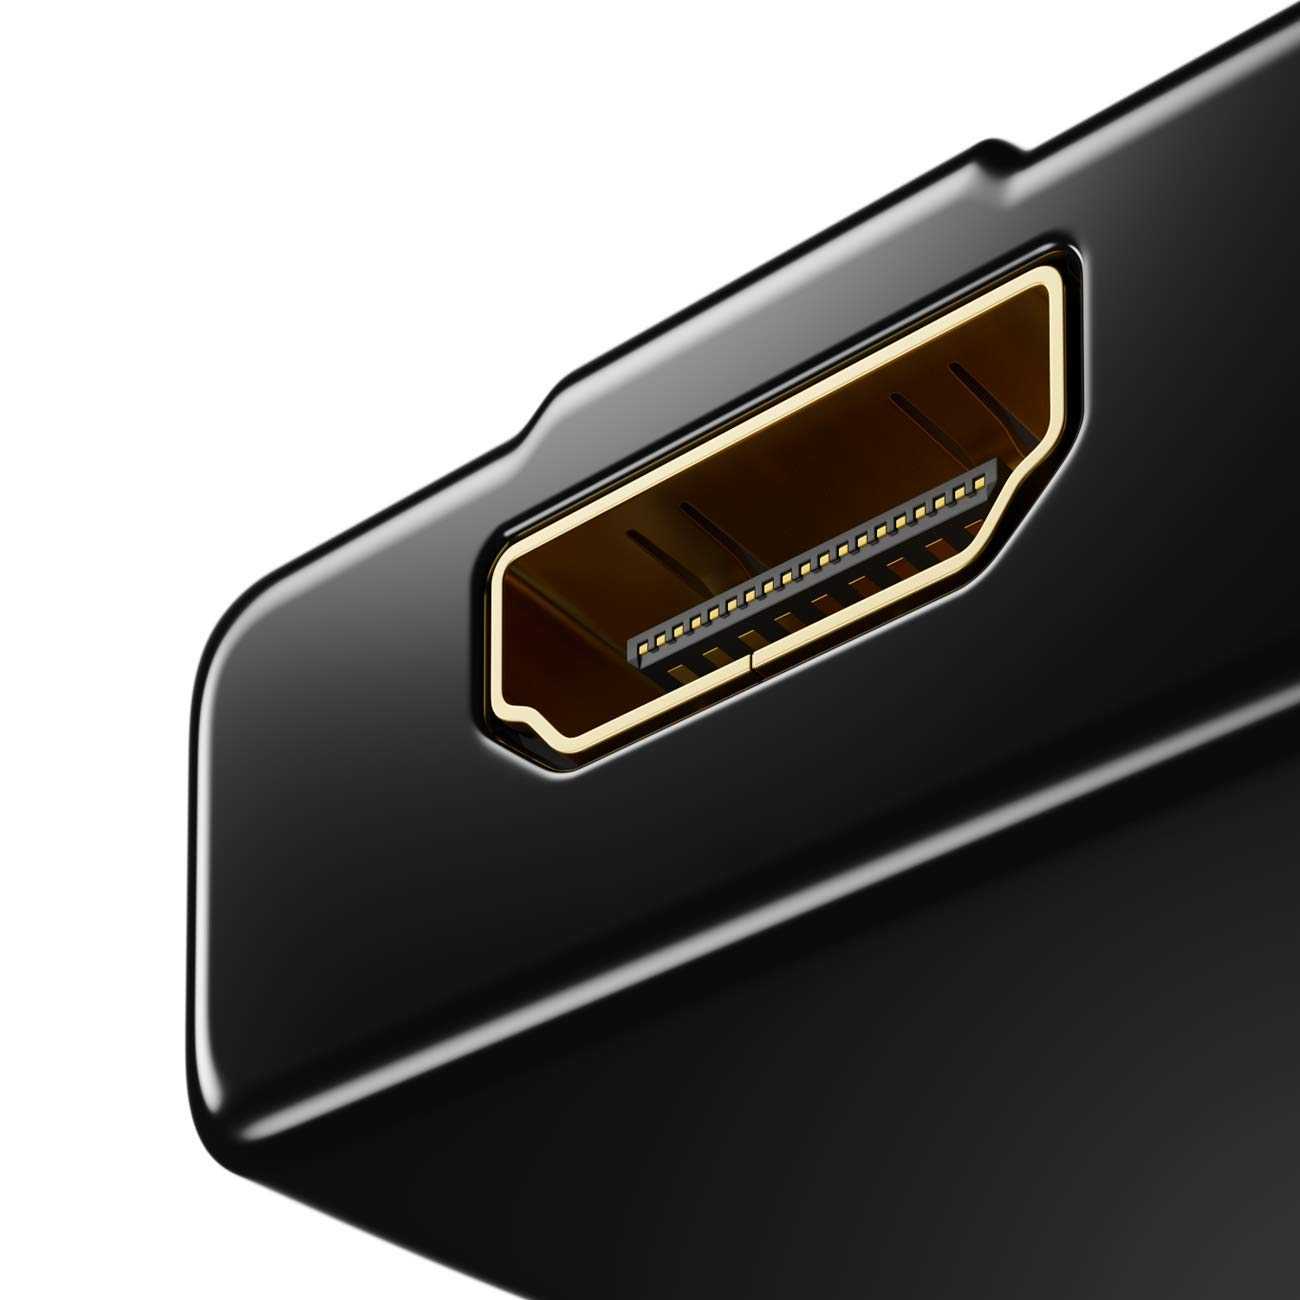 3 Port HDMI Switch QGECEN High Speed HDMI Switcher Splitter 3 IN 1 Out HDCP for Chromecast//Roku//Fire tv stick//Apple TV//Samsung TV//Blu Ray Player//Playstation//Wii U//Laptop 1080p 3D Supports 4K